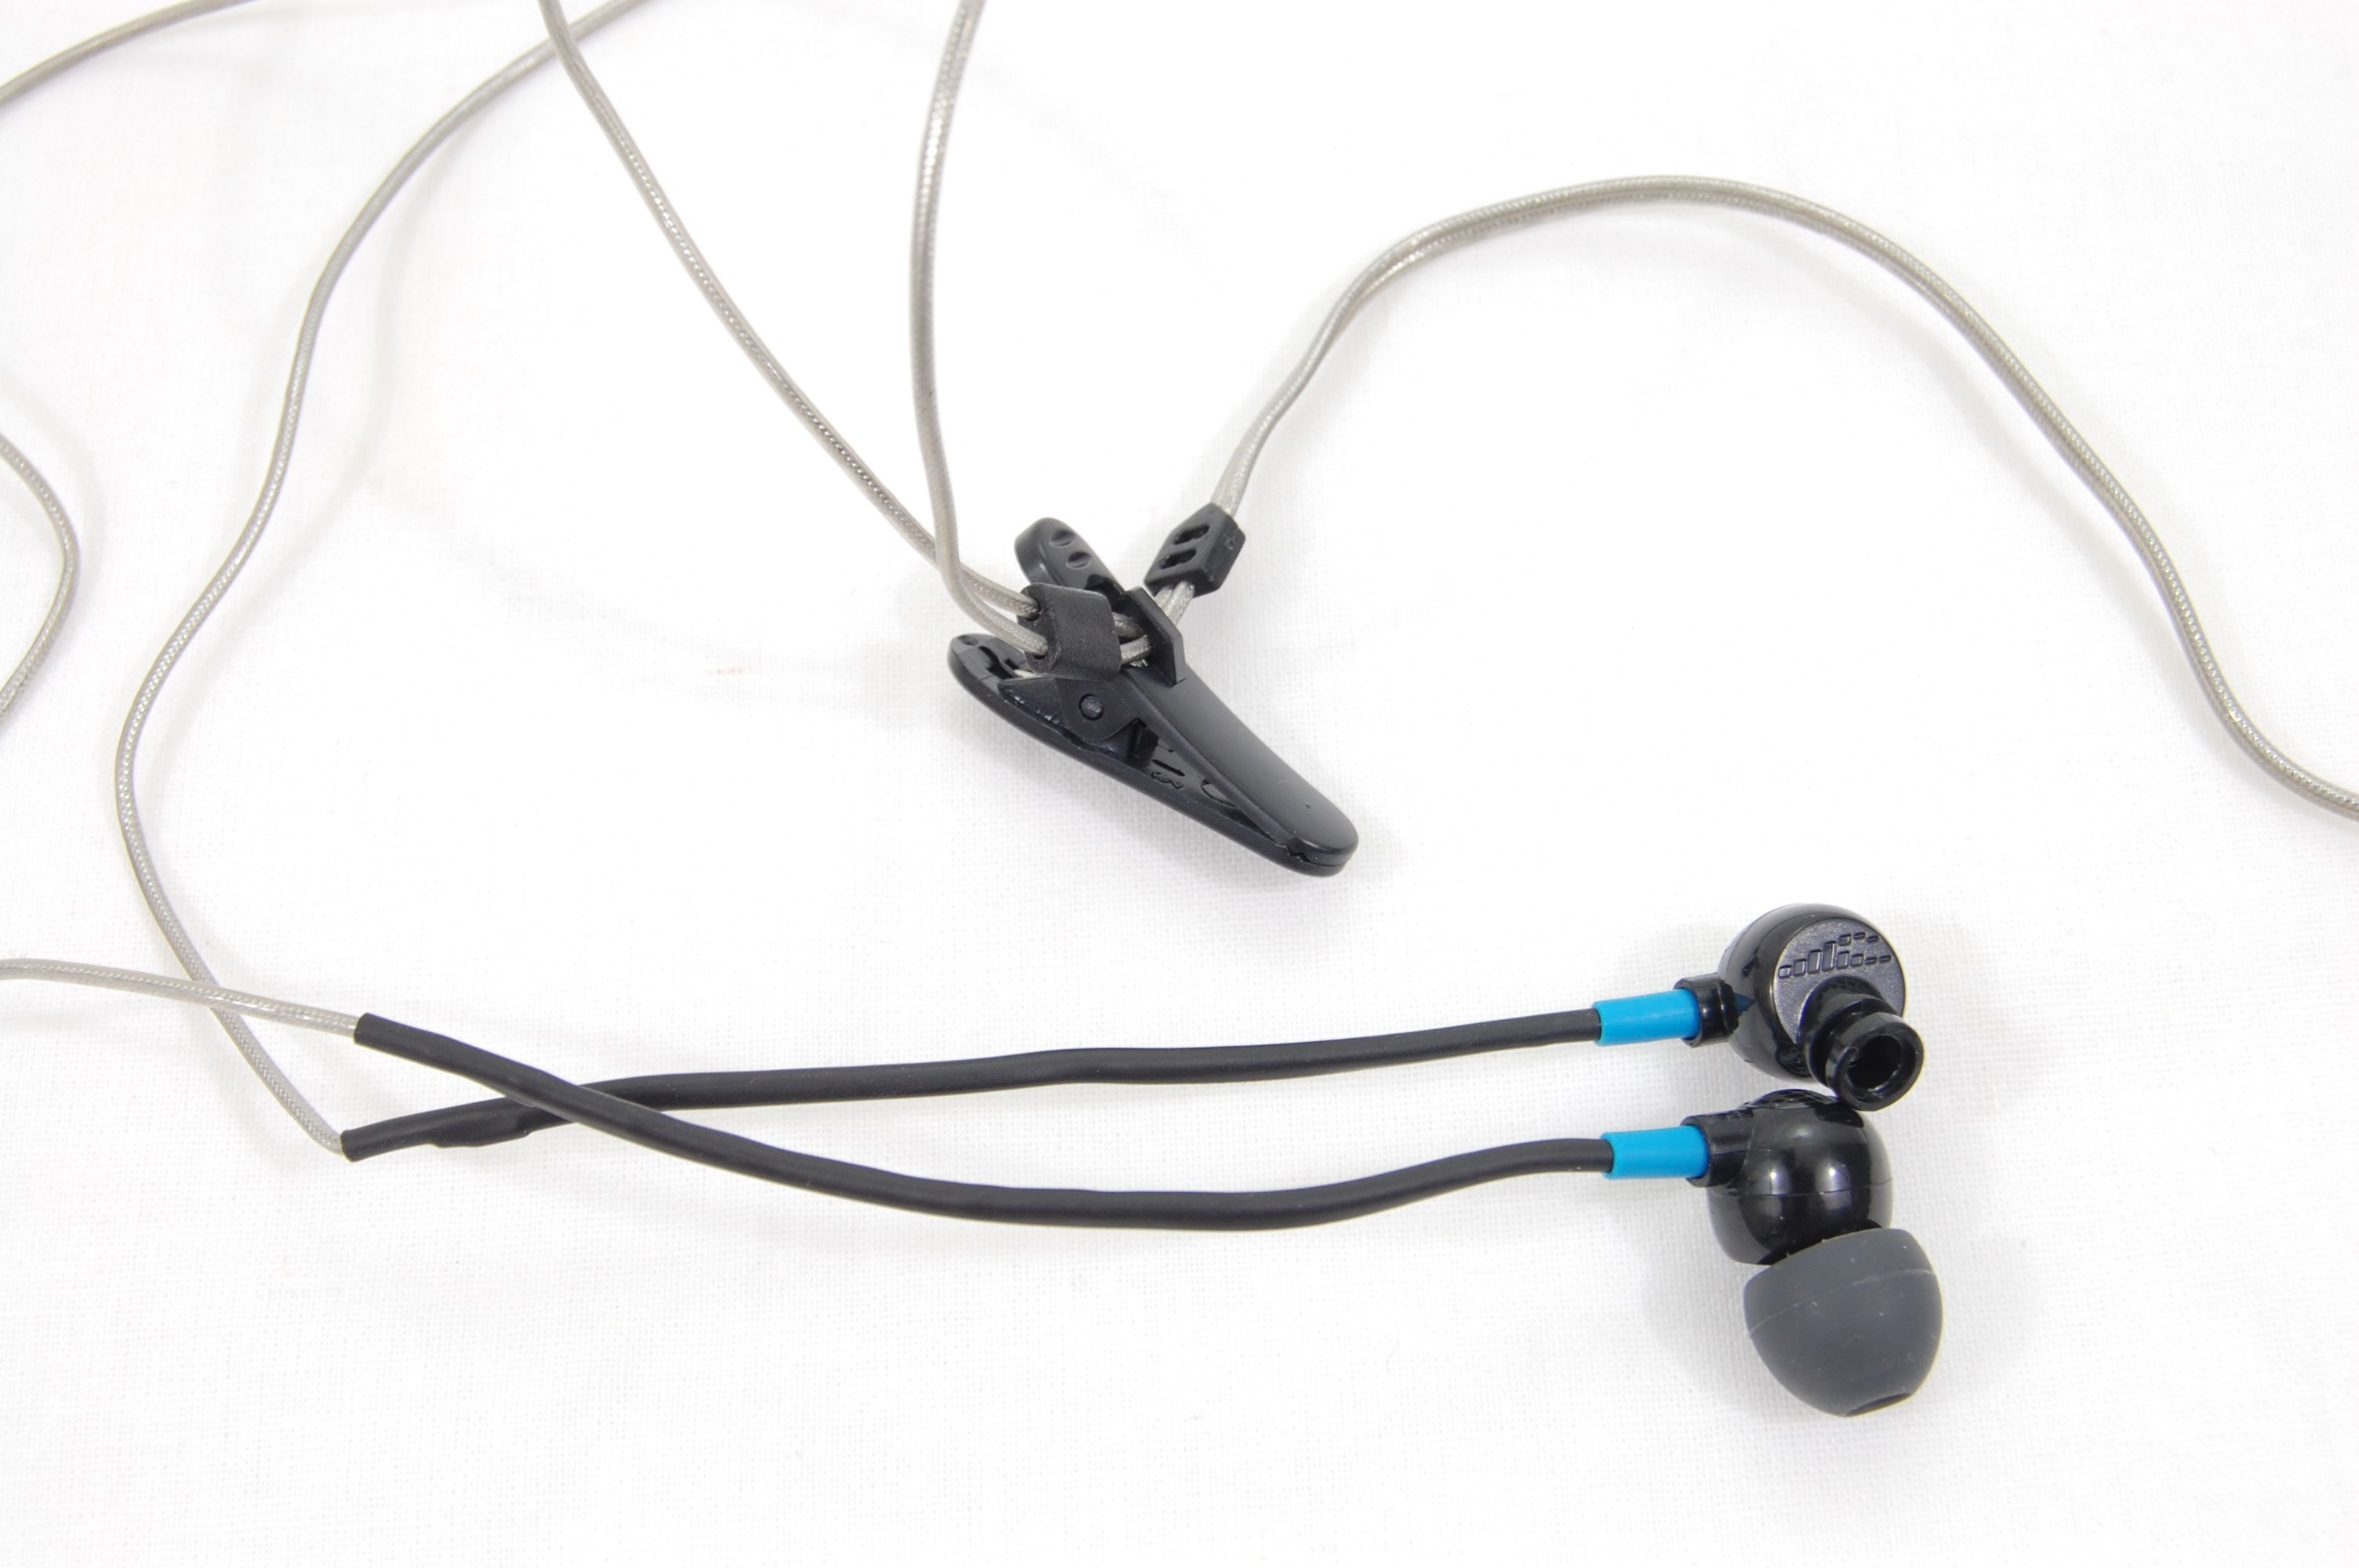 X-1 Trax Waterproof Custom Fit Earphones / Earbuds Review - Shirt Clip